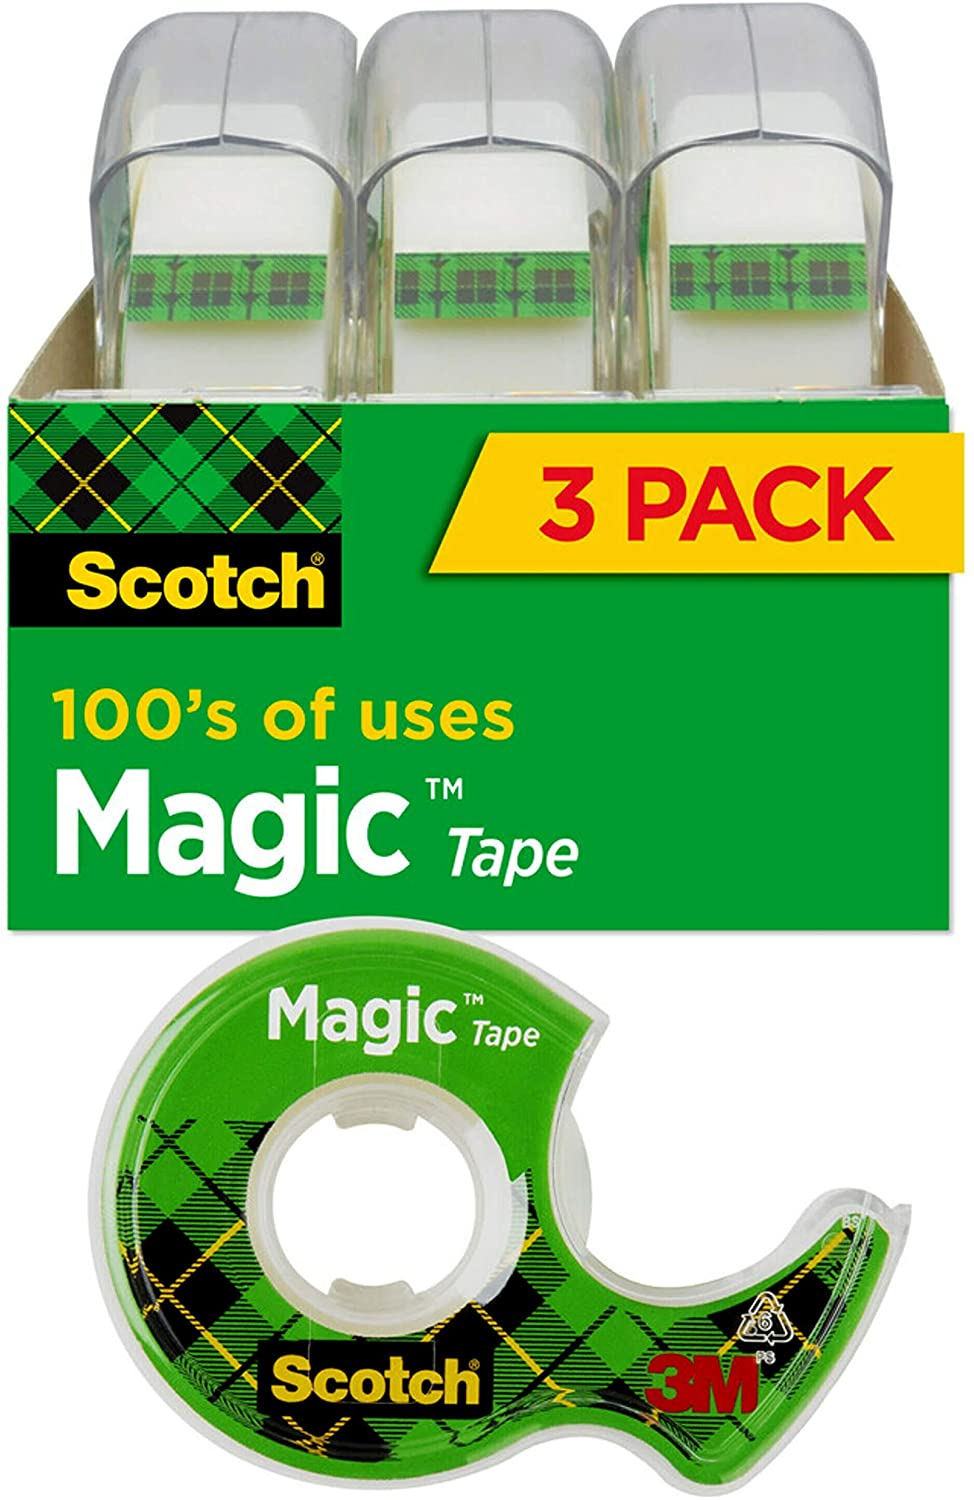 Scotch Magic Tape, 3 Rolls, Numerous Applications, Invisible, Engineered for Repairing, 3/4 x 300 Inches (3105) : Clear Tapes : Office Products